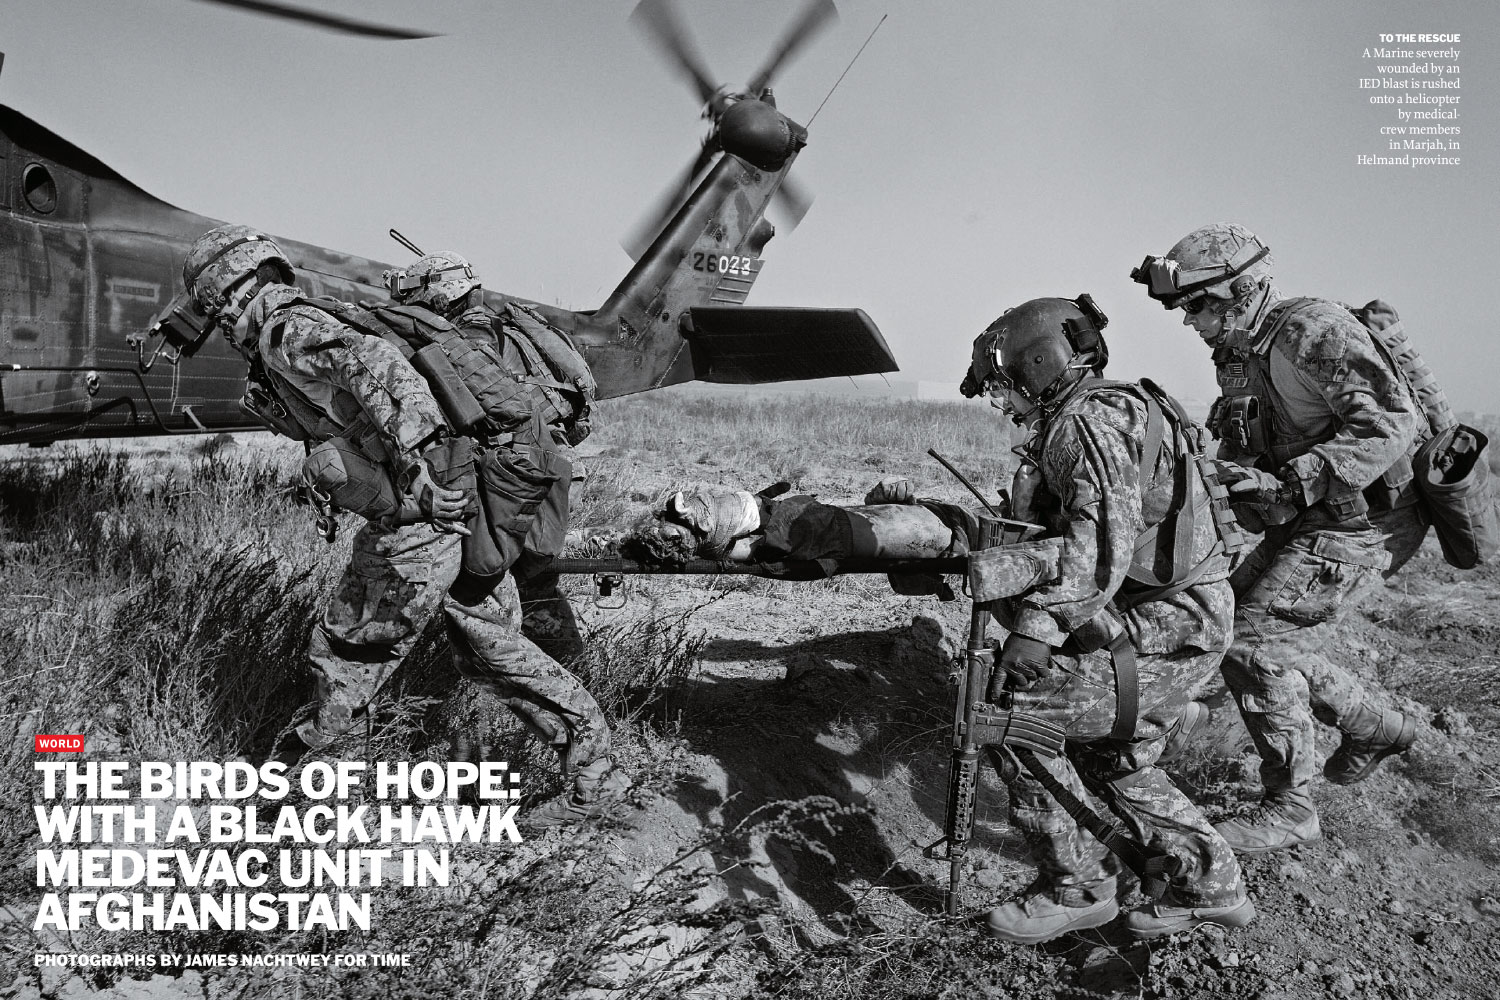 From  The Birds Of Hope: With A Black Hawk Medevac Unit In Afghanistan.  January 17, 2011 issue.